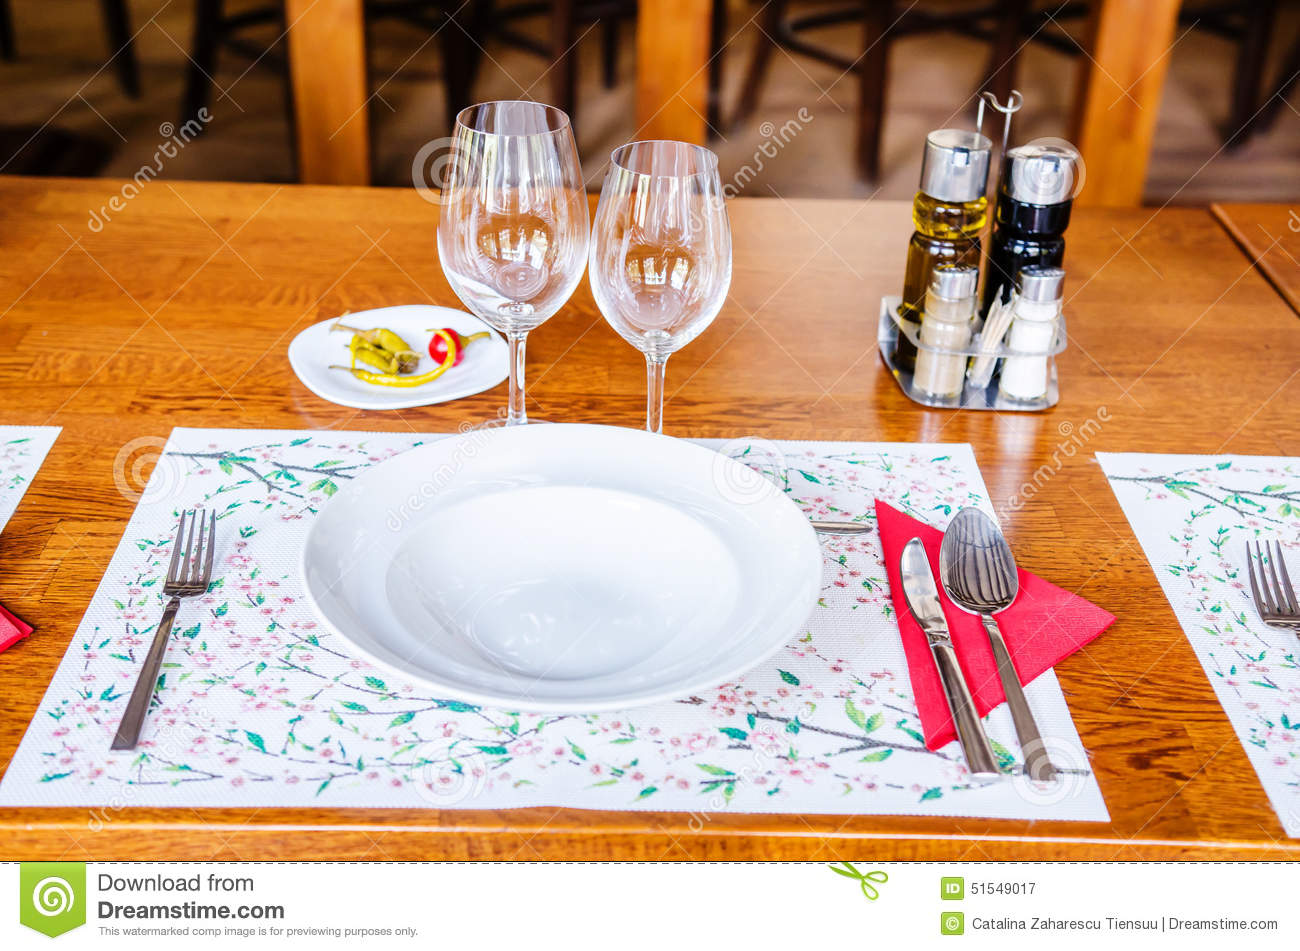 How To Set Up The: simple table setting for lunch